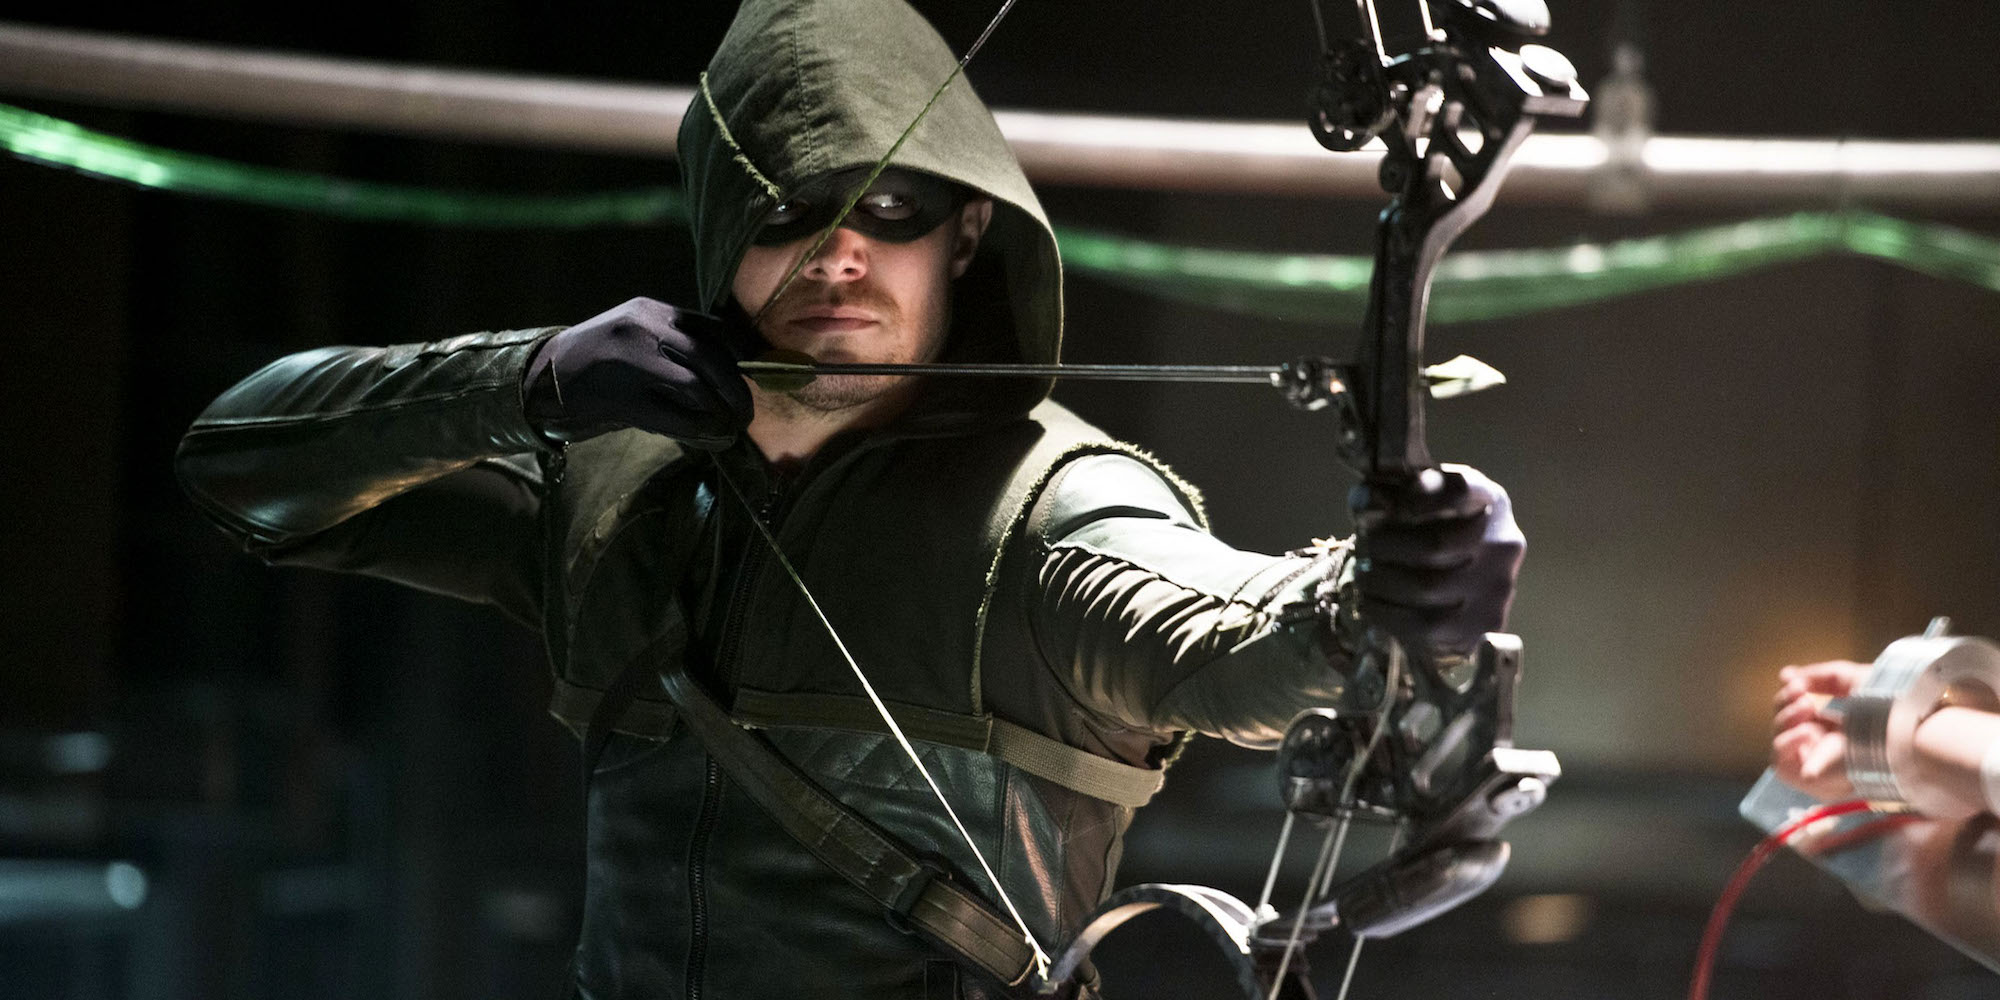 Stephen Amell as Oliver Queen the Green Arrow on the CW's Arrow